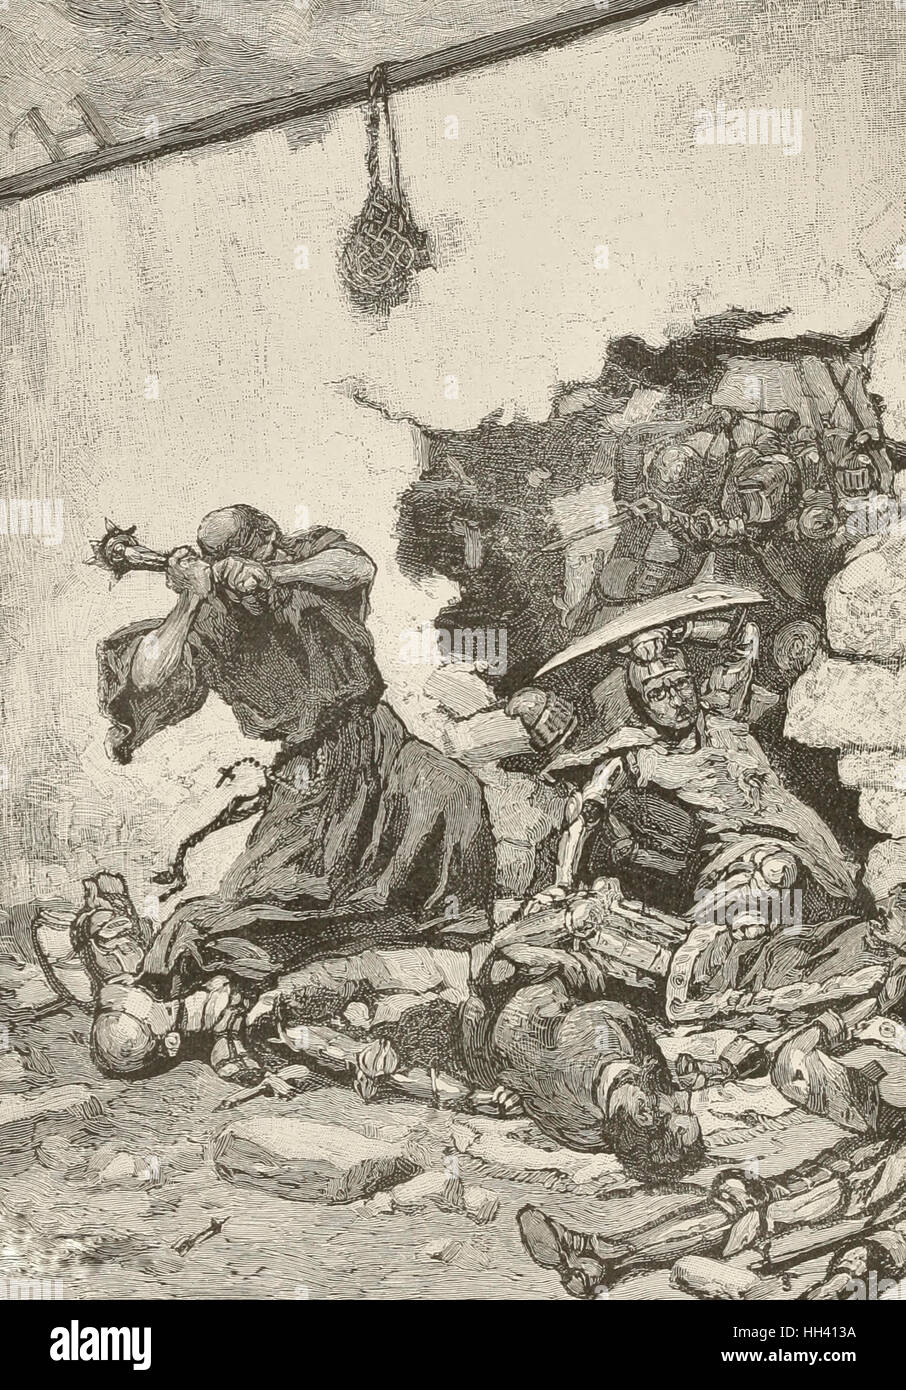 The Monk Sir Froissart in the breach of the Monastery Wall during the Hundred Years War - Stock Image